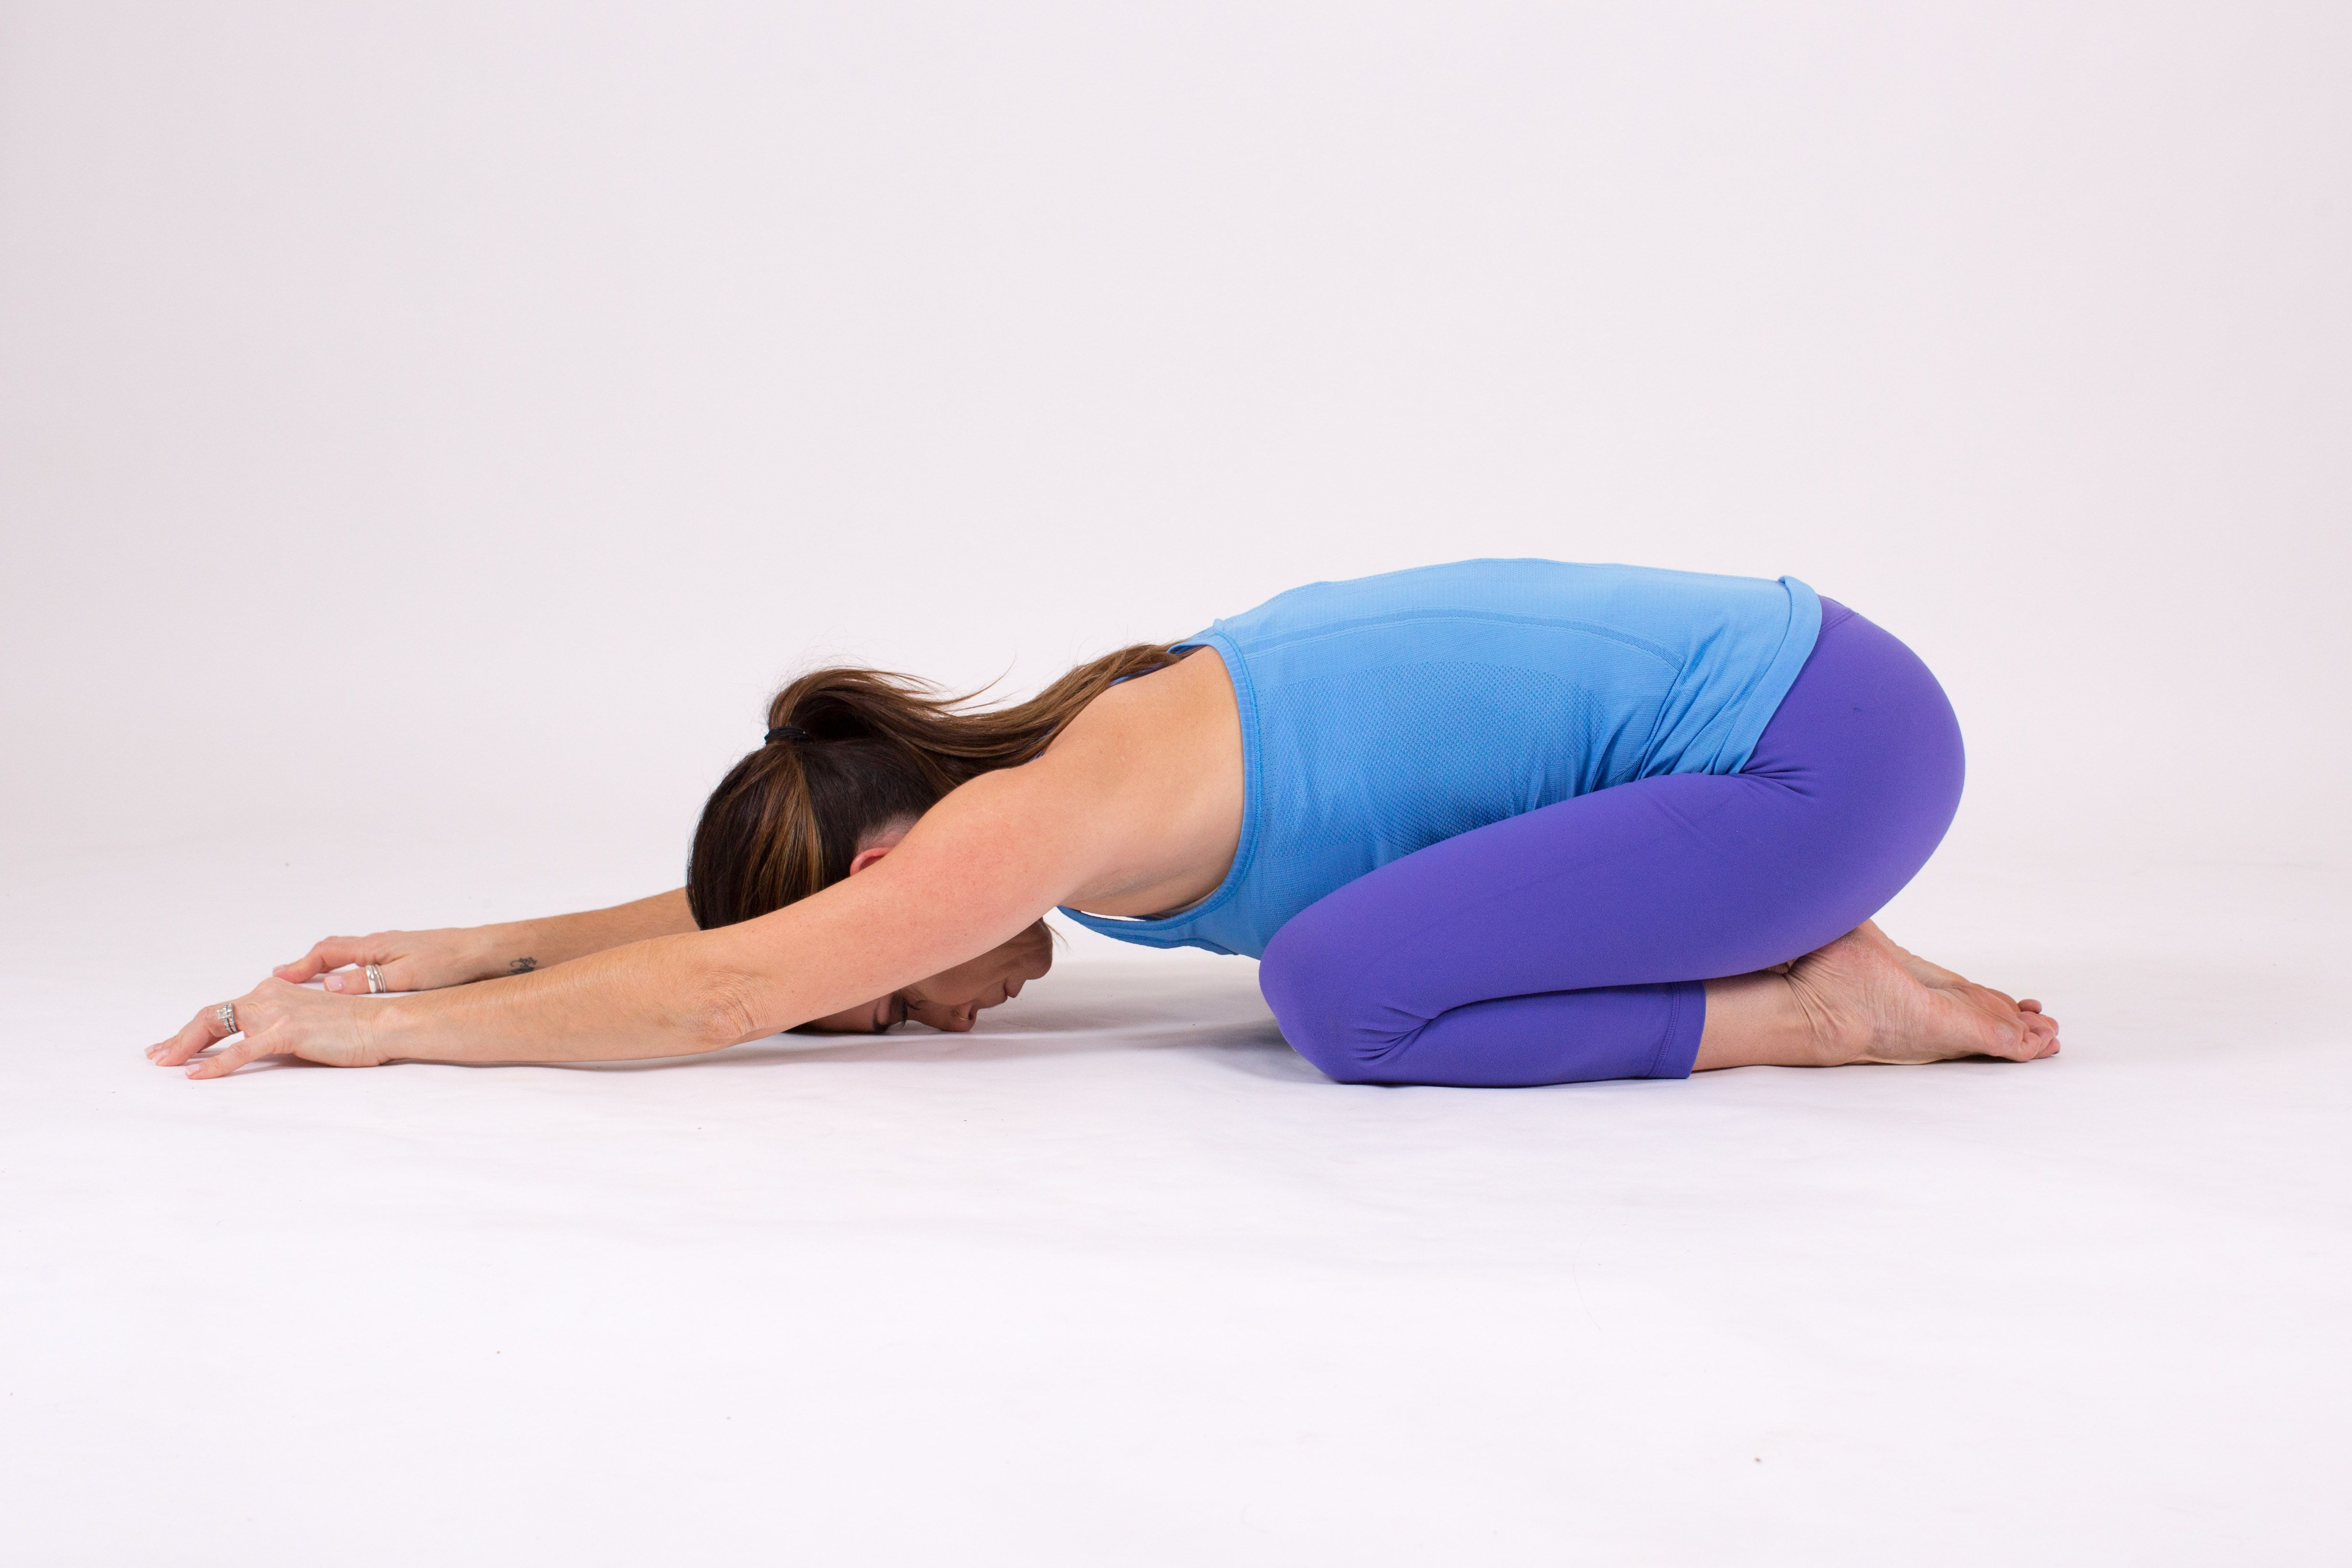 Extended Child S Pose Kid Poses Poses Therapeutic Yoga